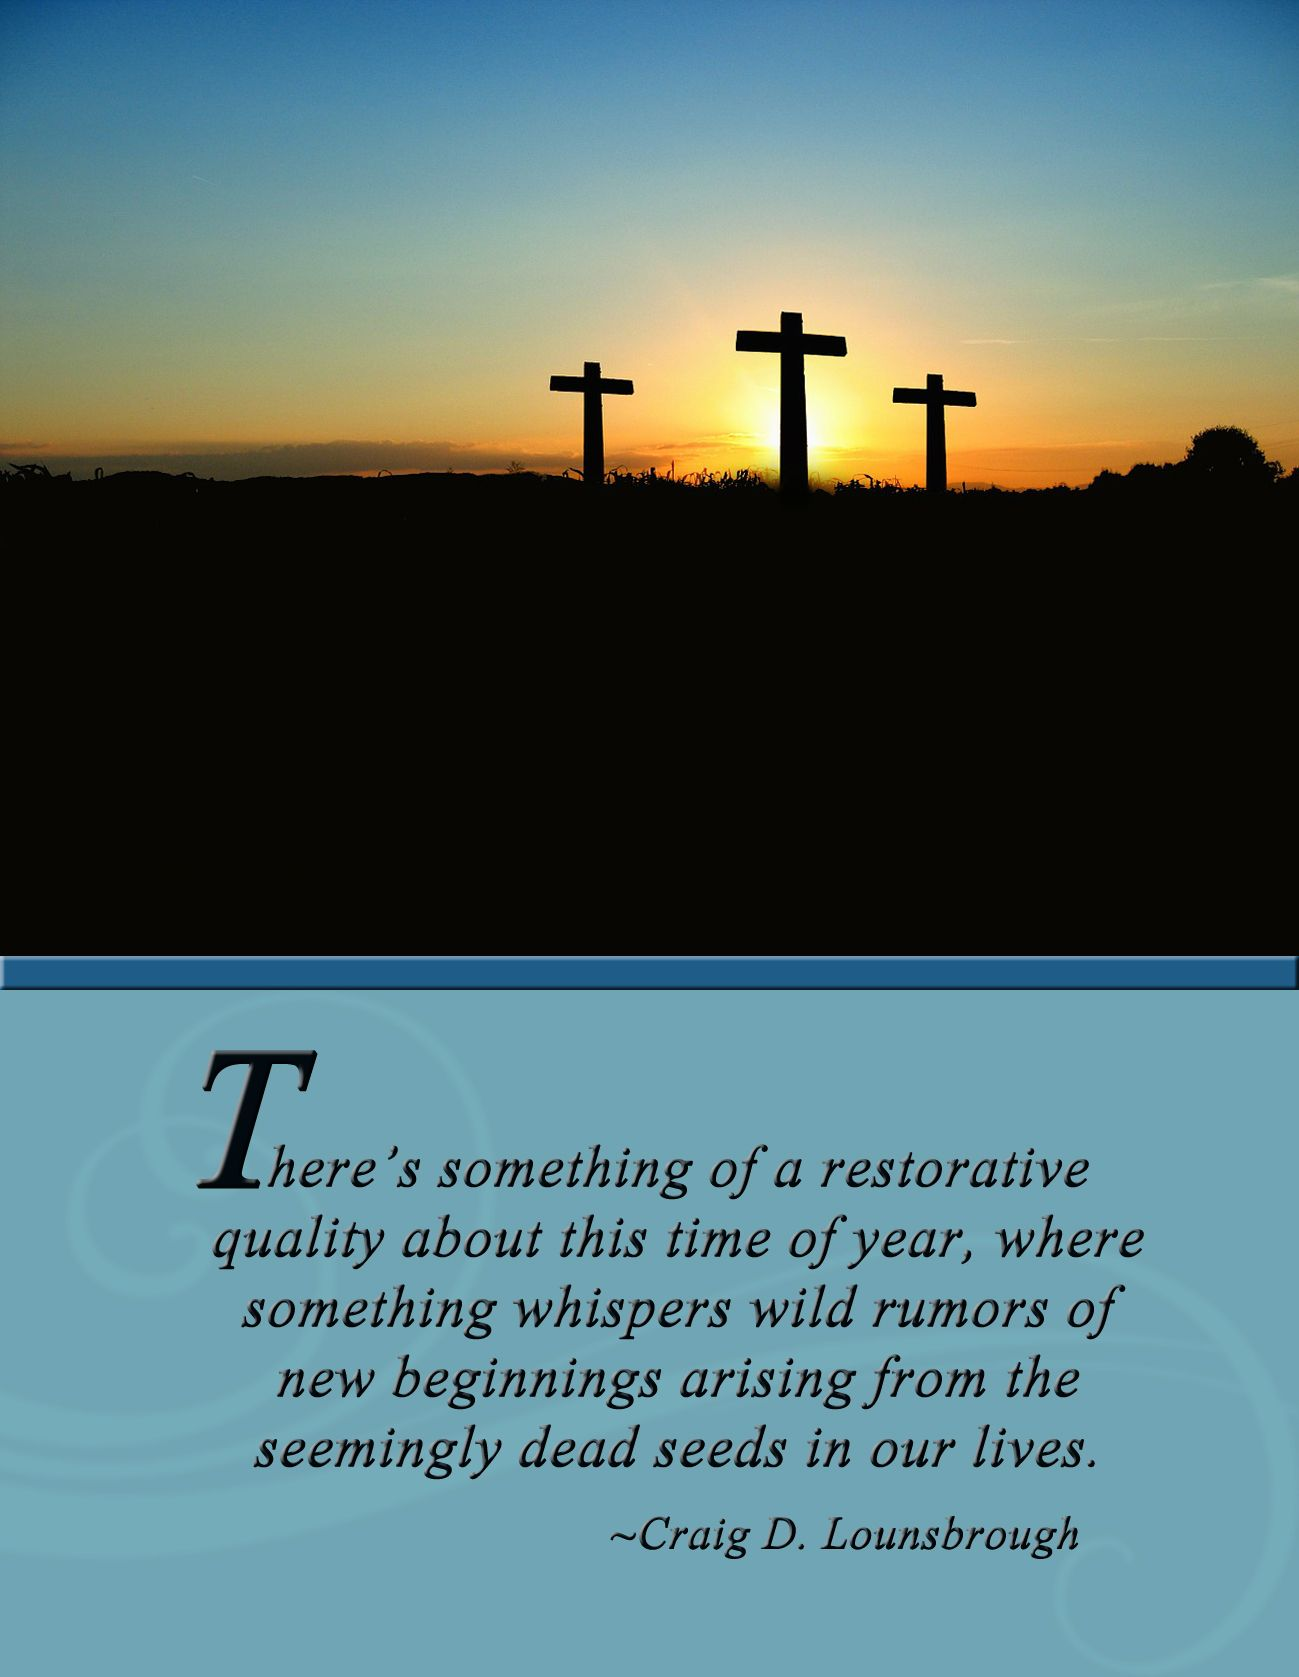 Easter Dares Me Believe In New Beginnings When All I Have Seen Are Terrifying Endings Find Resource Bible Encouragement Gospel Message Christian Encouragement